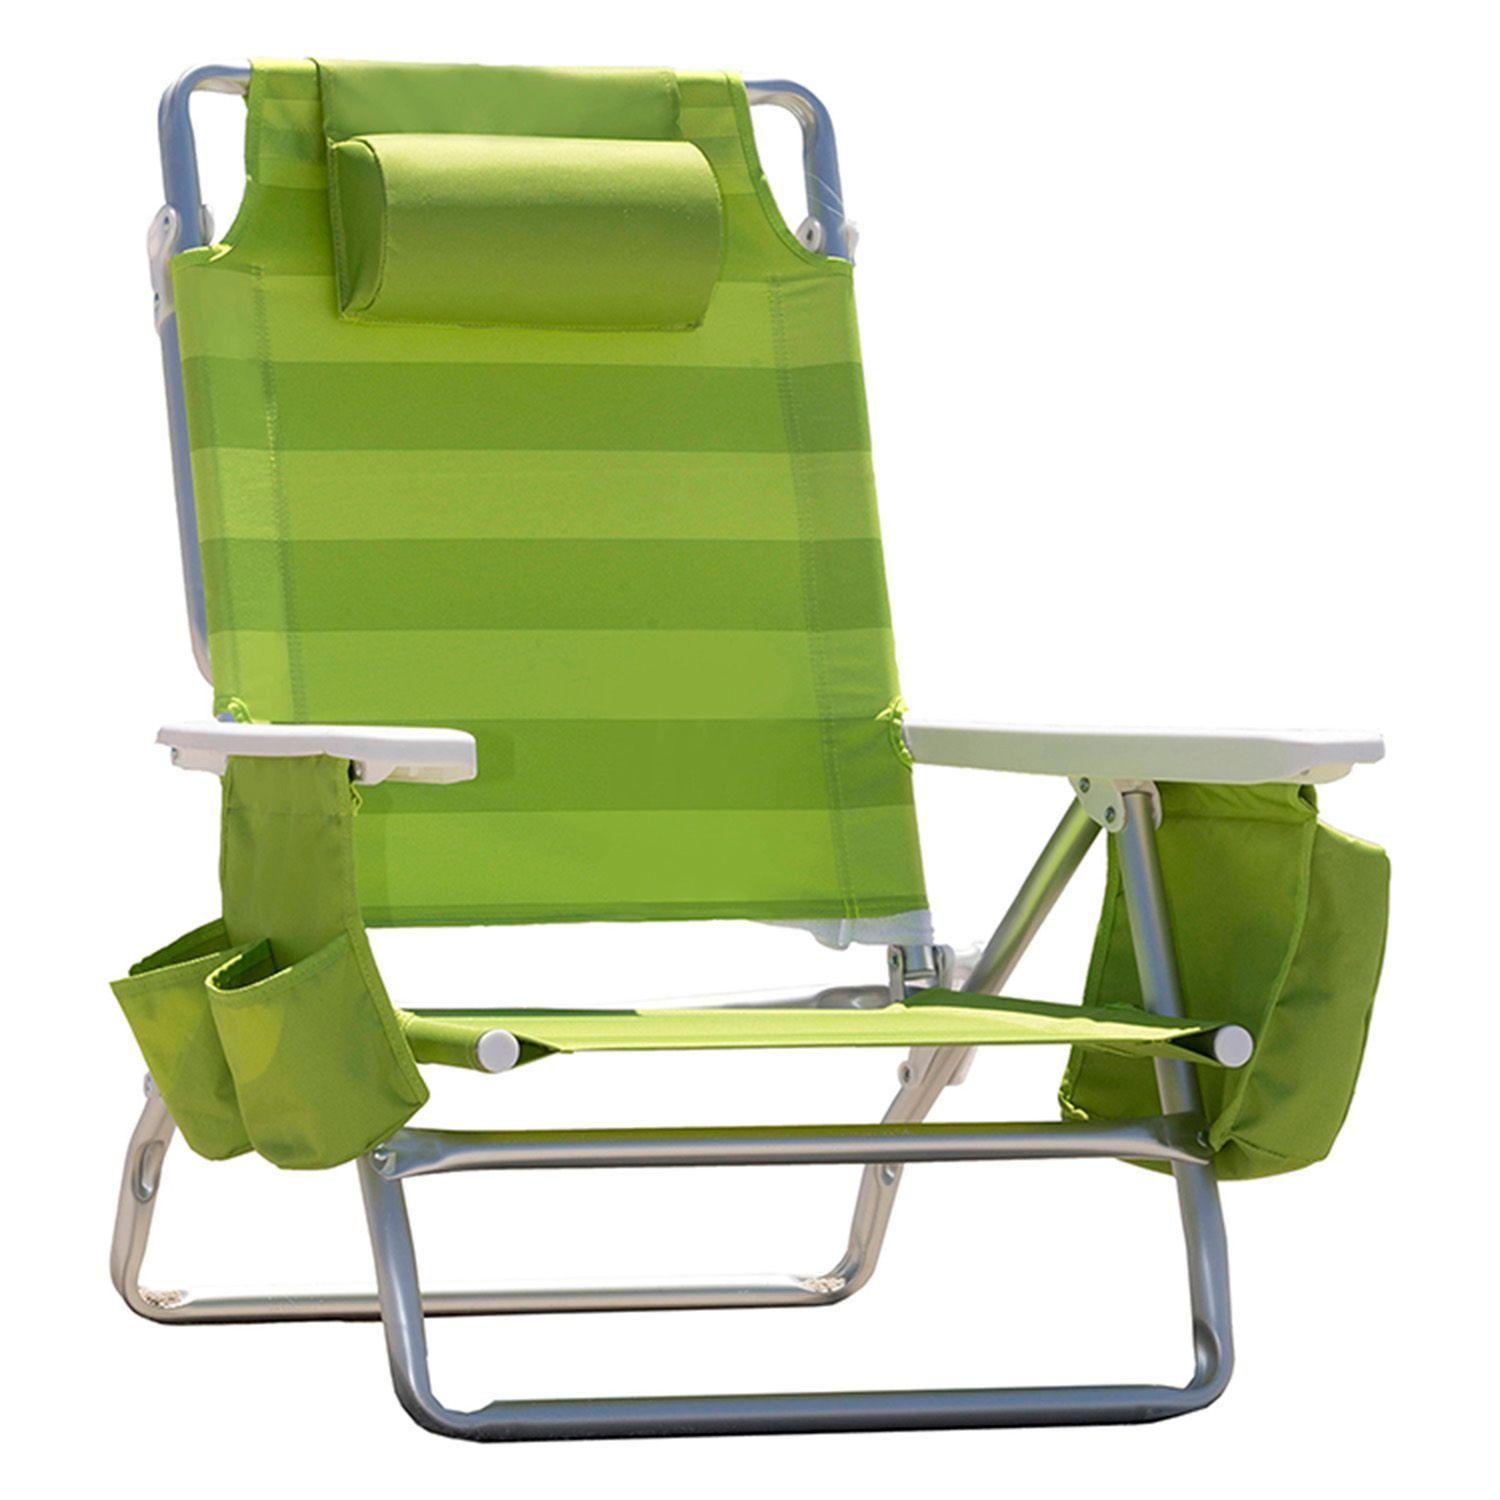 Beach chair lime sams club 2996 with images